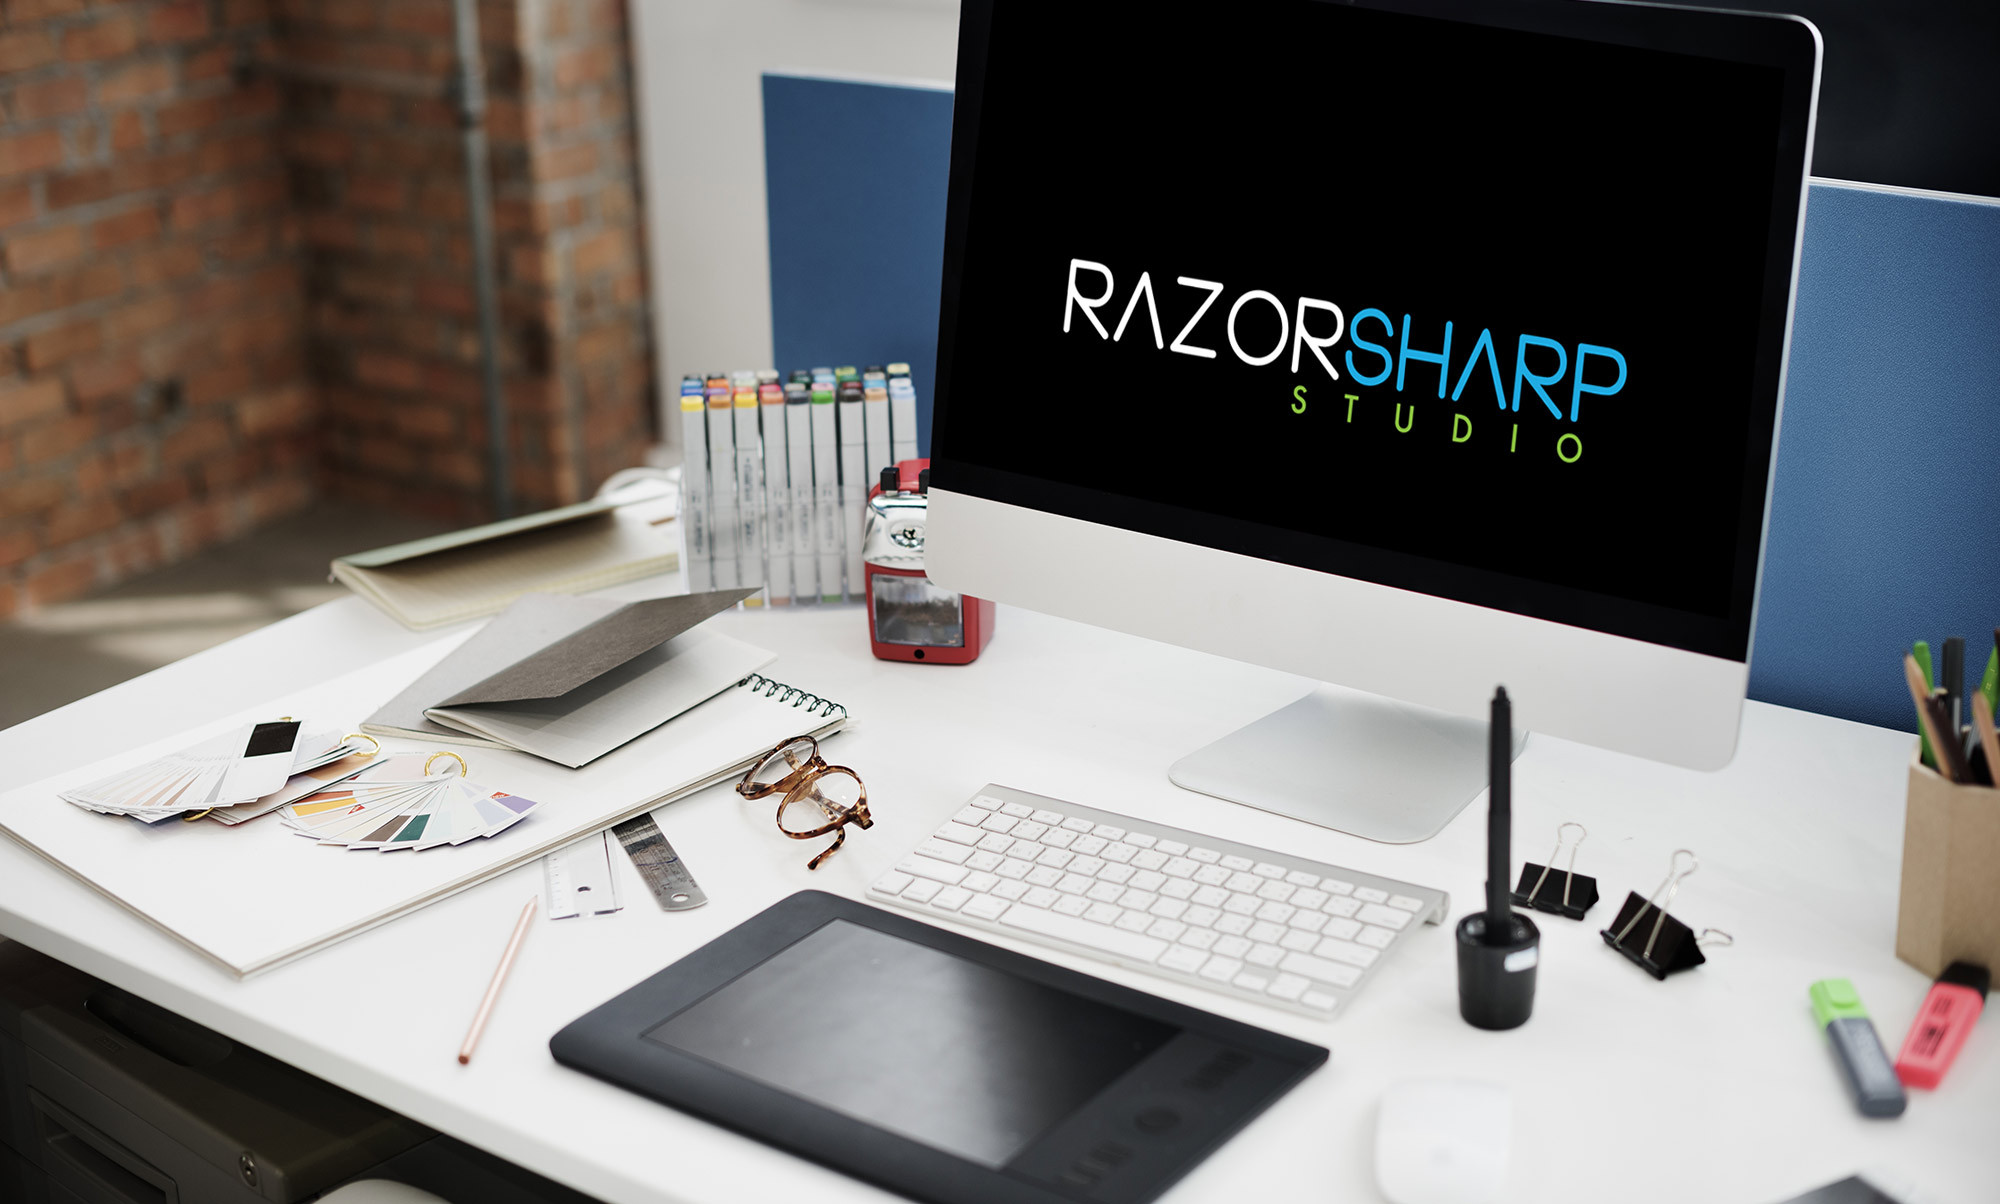 Razorsharp Studio